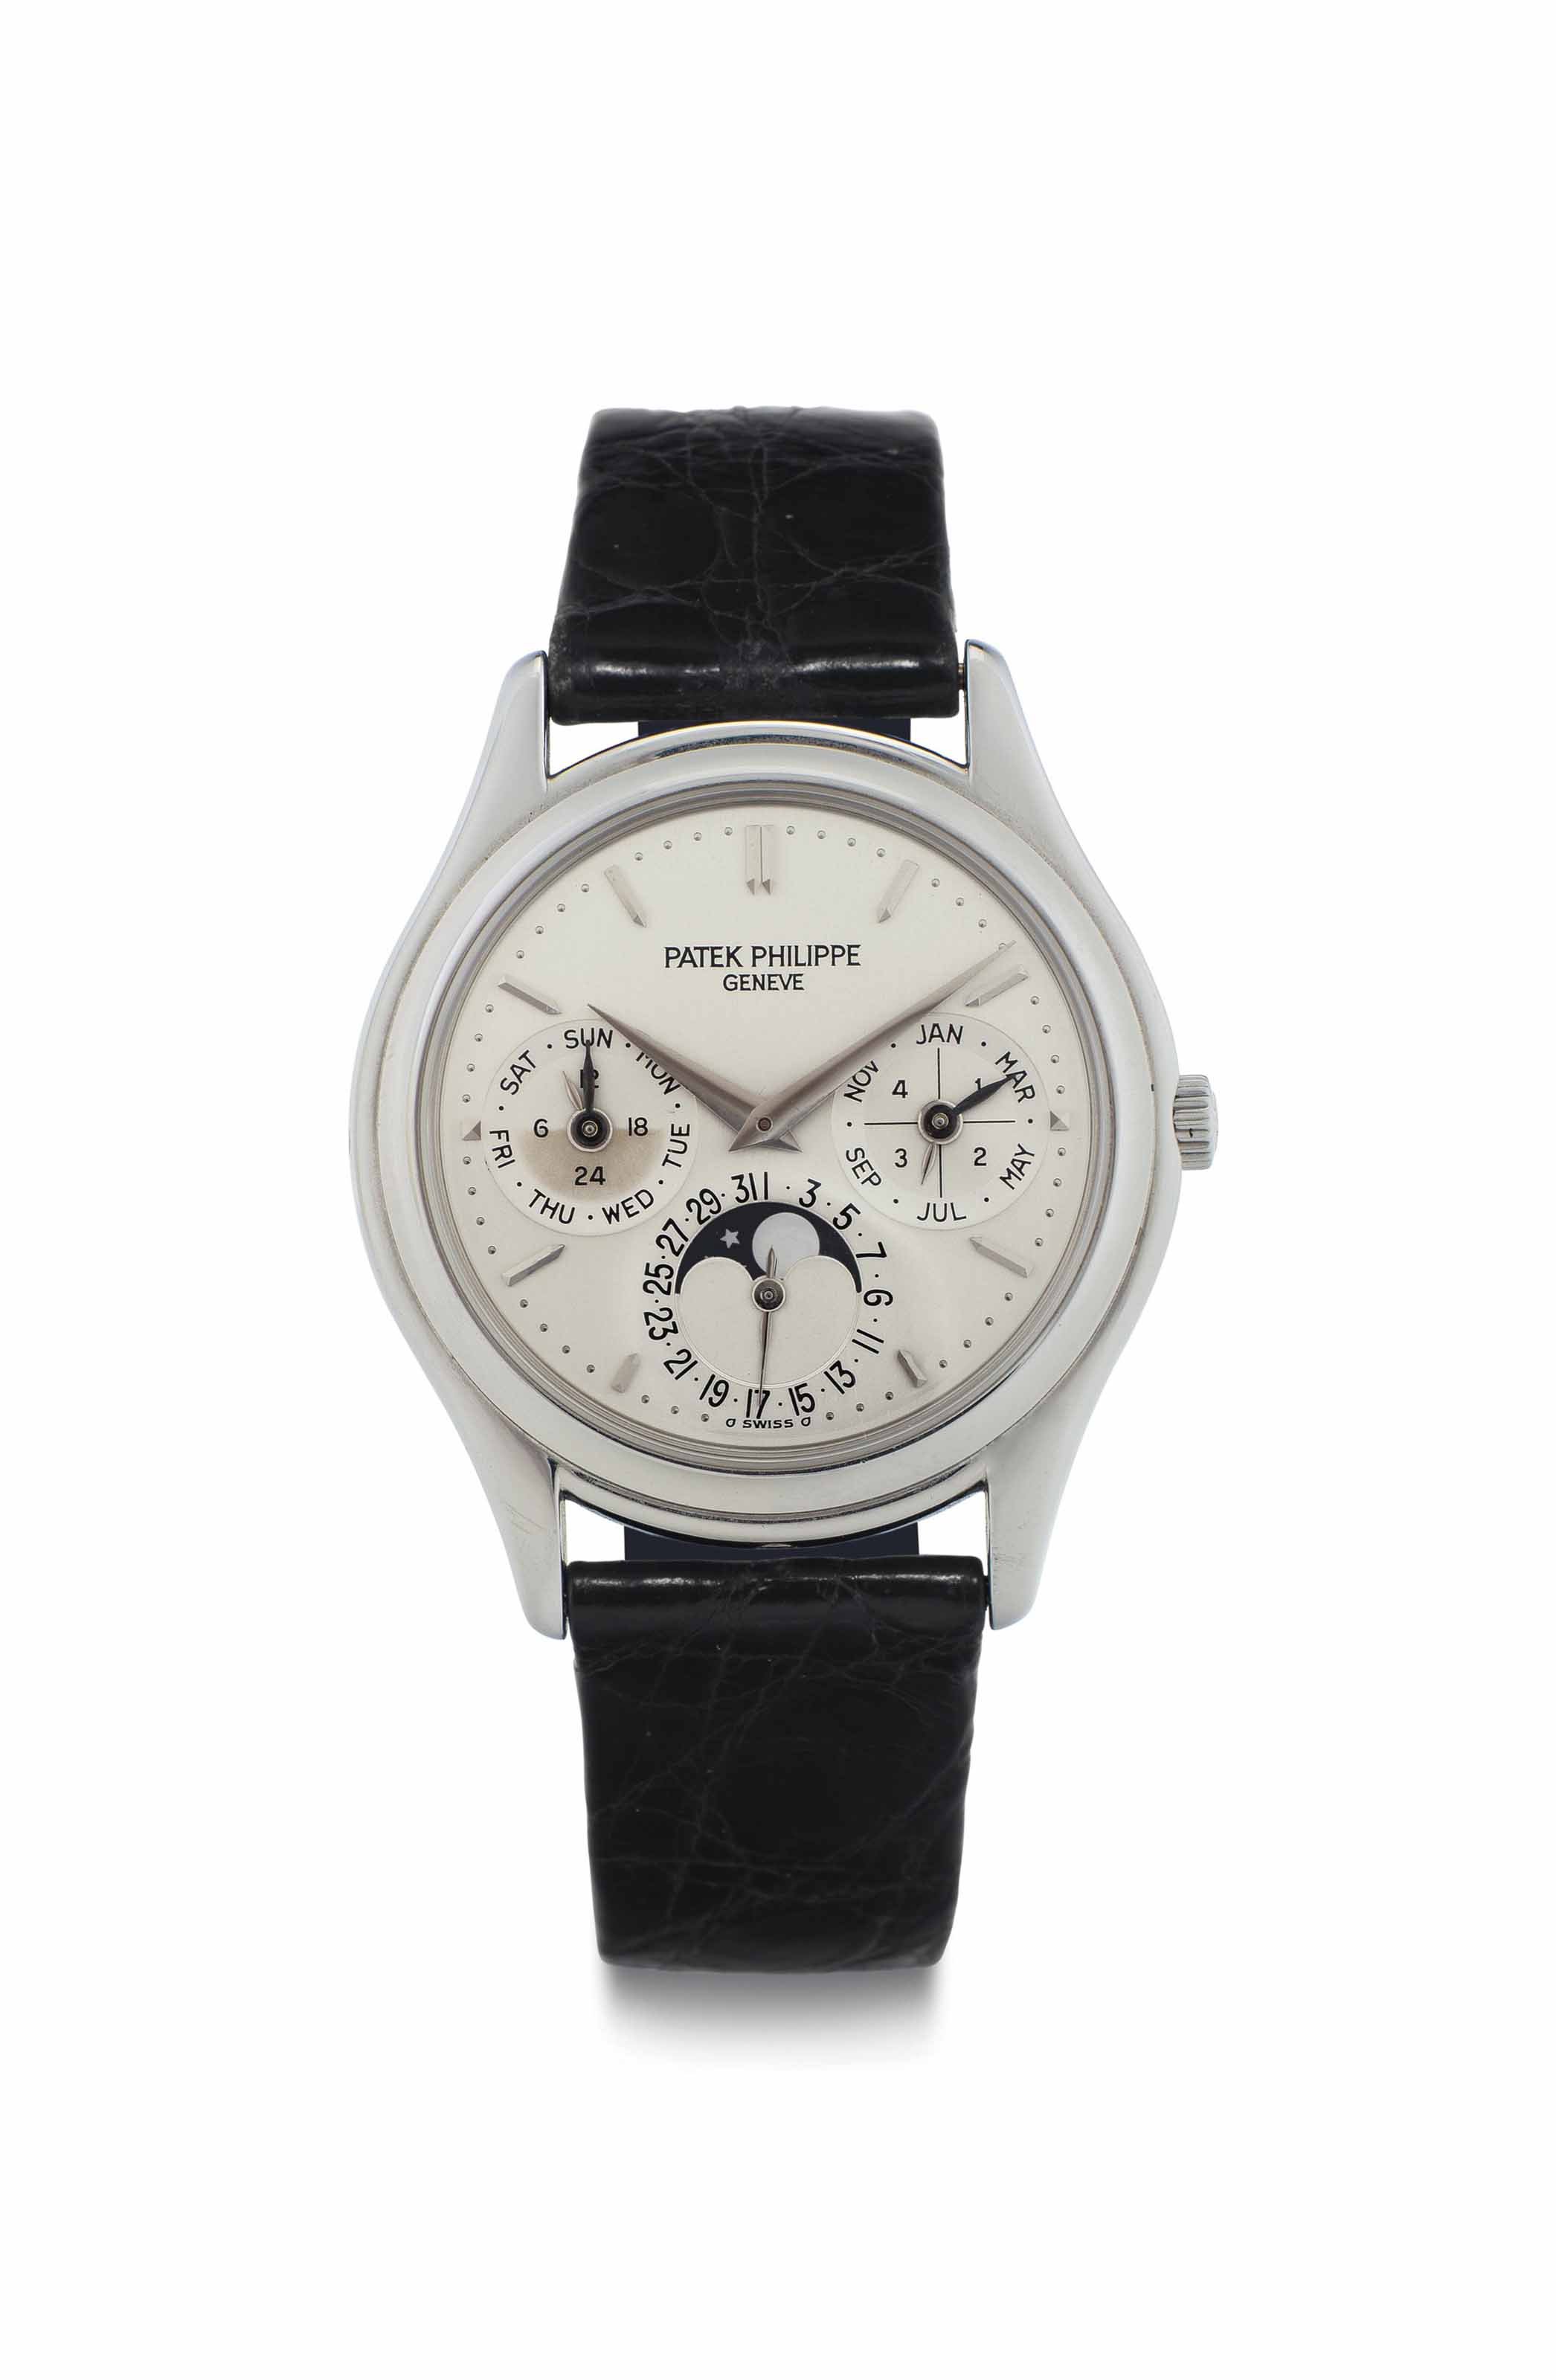 Patek Philippe. A Fine and Rare Platinum Automatic Perpetual Calendar Wristwatch with Moon Phases